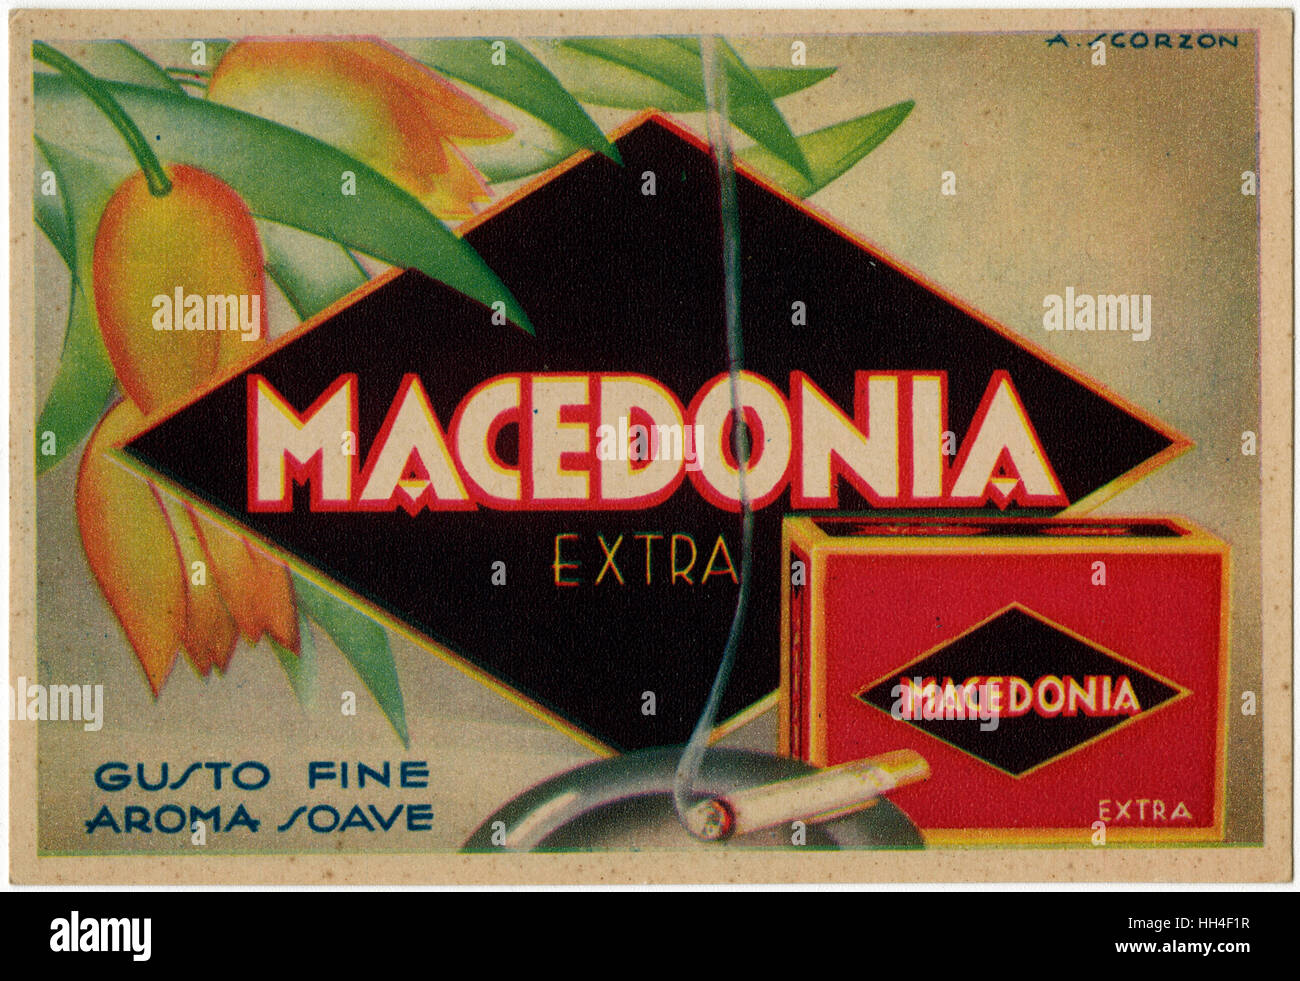 Lovely Art Deco Advertorial postcard for Macedonia Extra Cigarettes ('Fine Taste Sweet Aroma') by Amos Scorzon - Stock Image